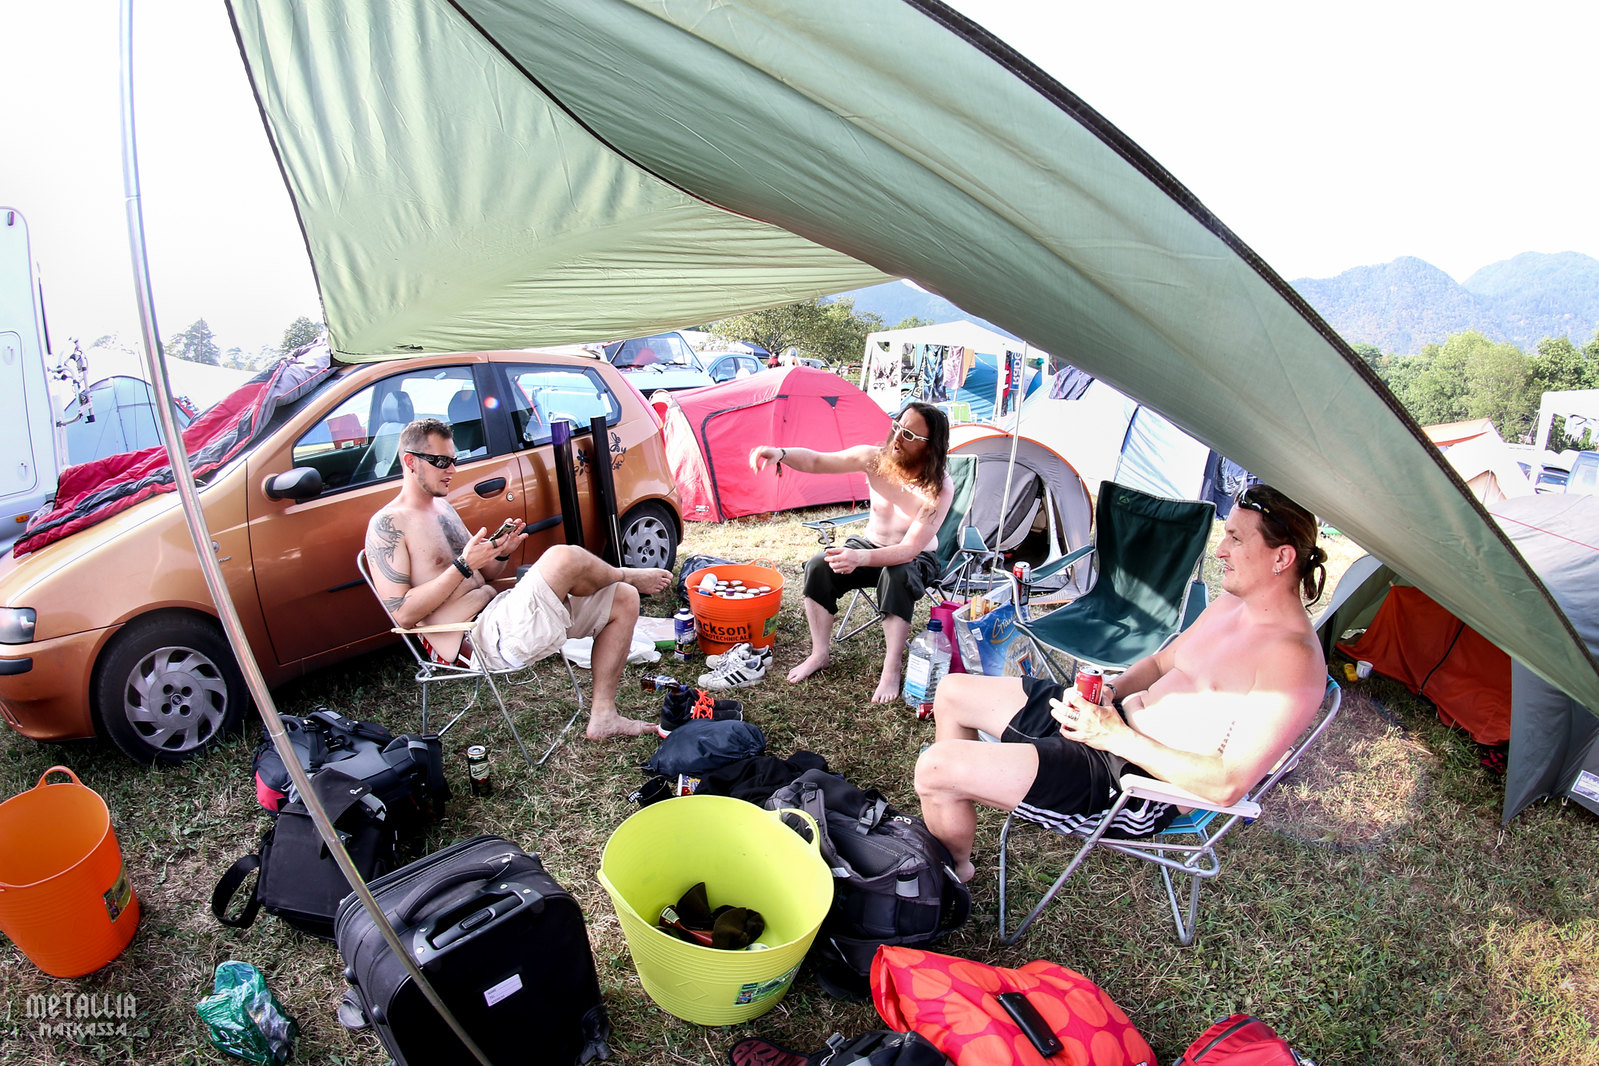 metaldays, metaldays 2016, metalcamp, metaldays camping site